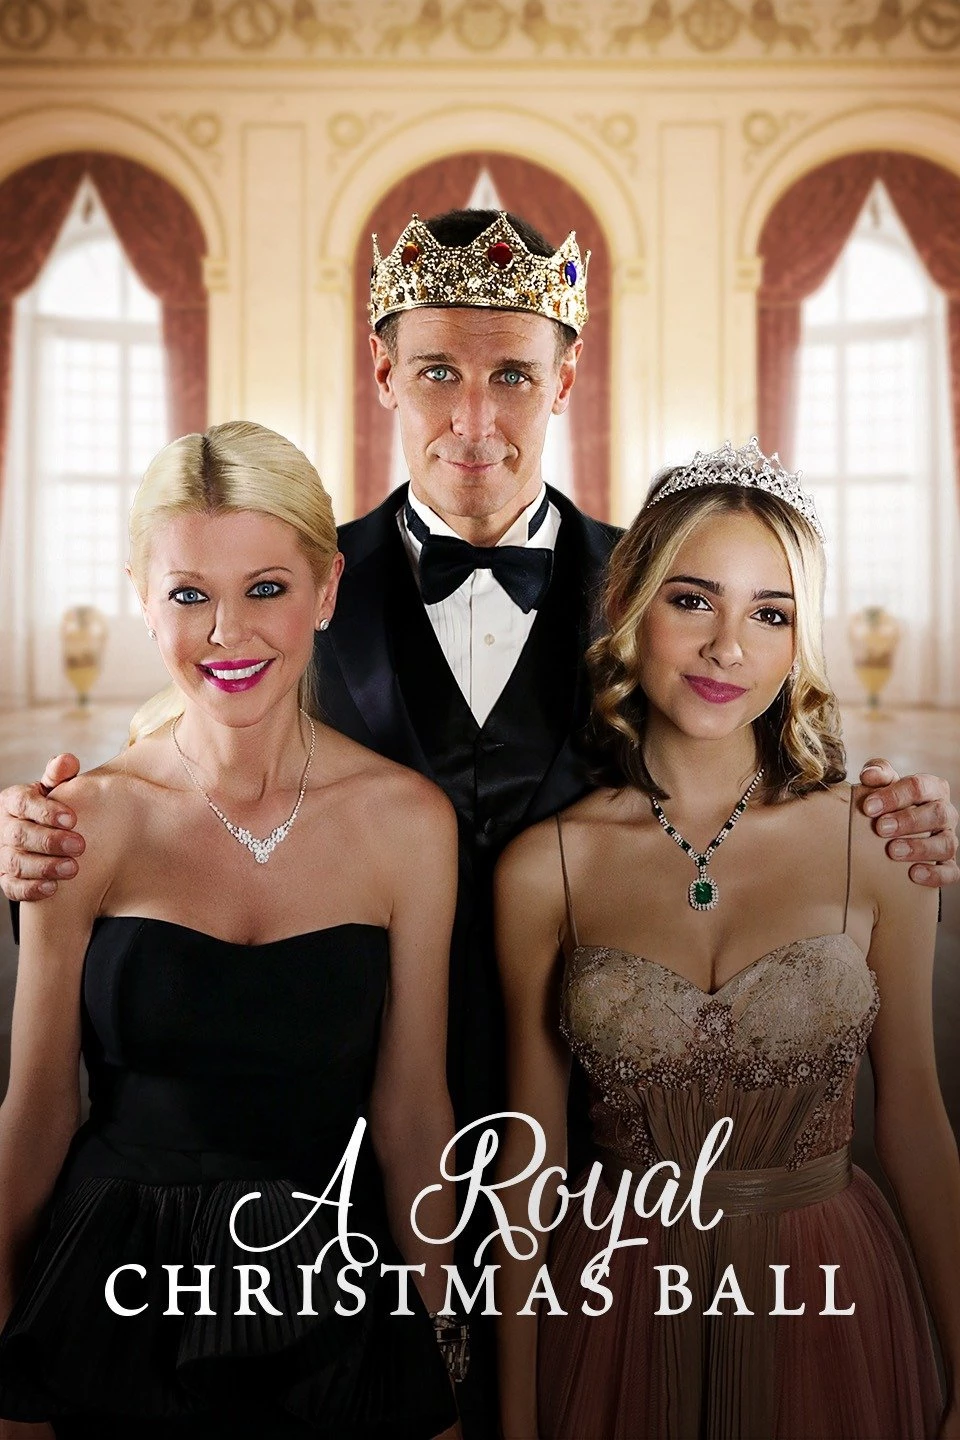 A Royal Christmas Ball 2020 A Royal Christmas Ball Dvd (2017) in 2020 | Royal christmas